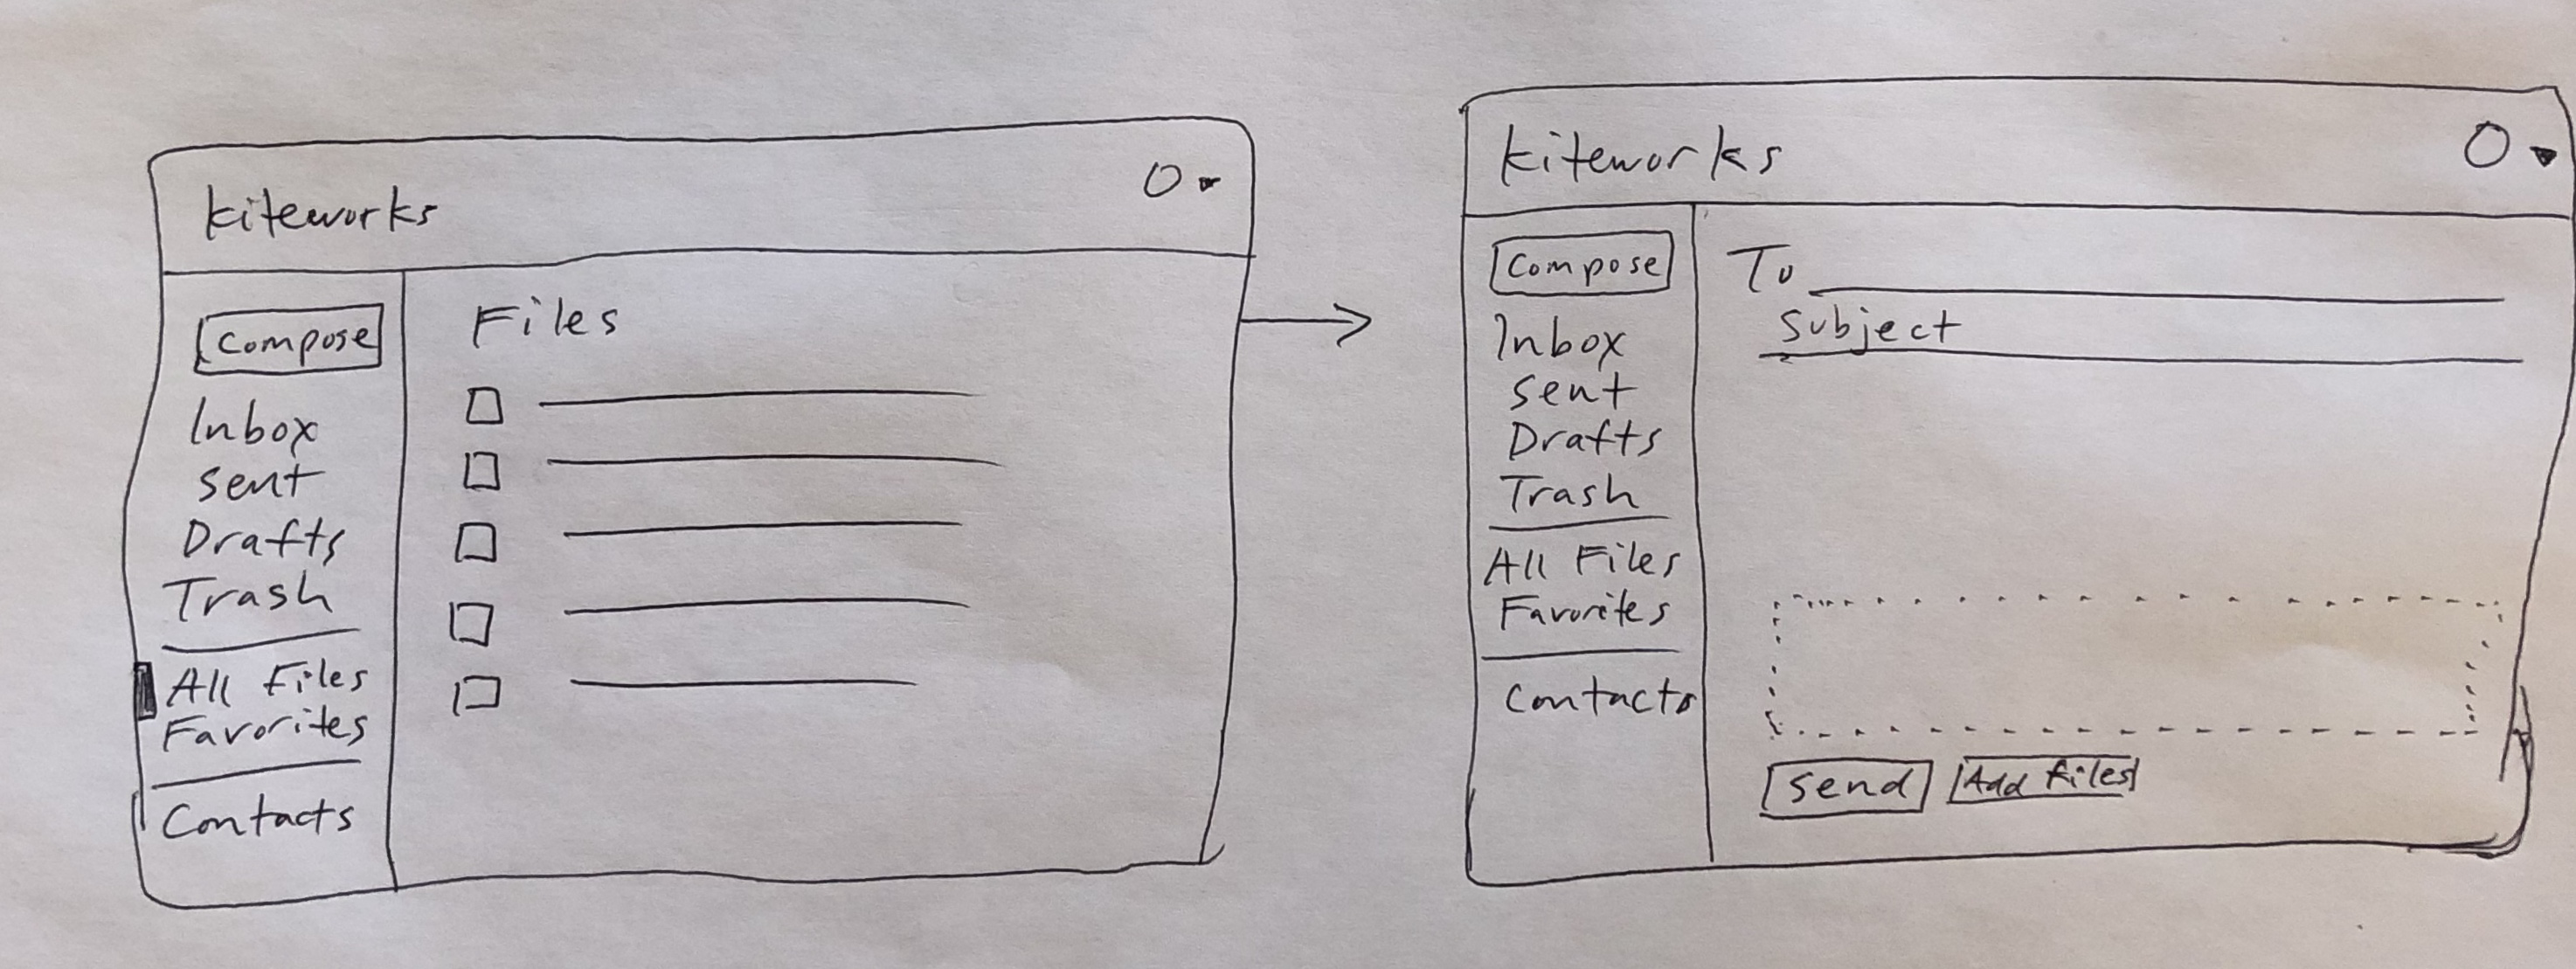 sketches for file sharing app